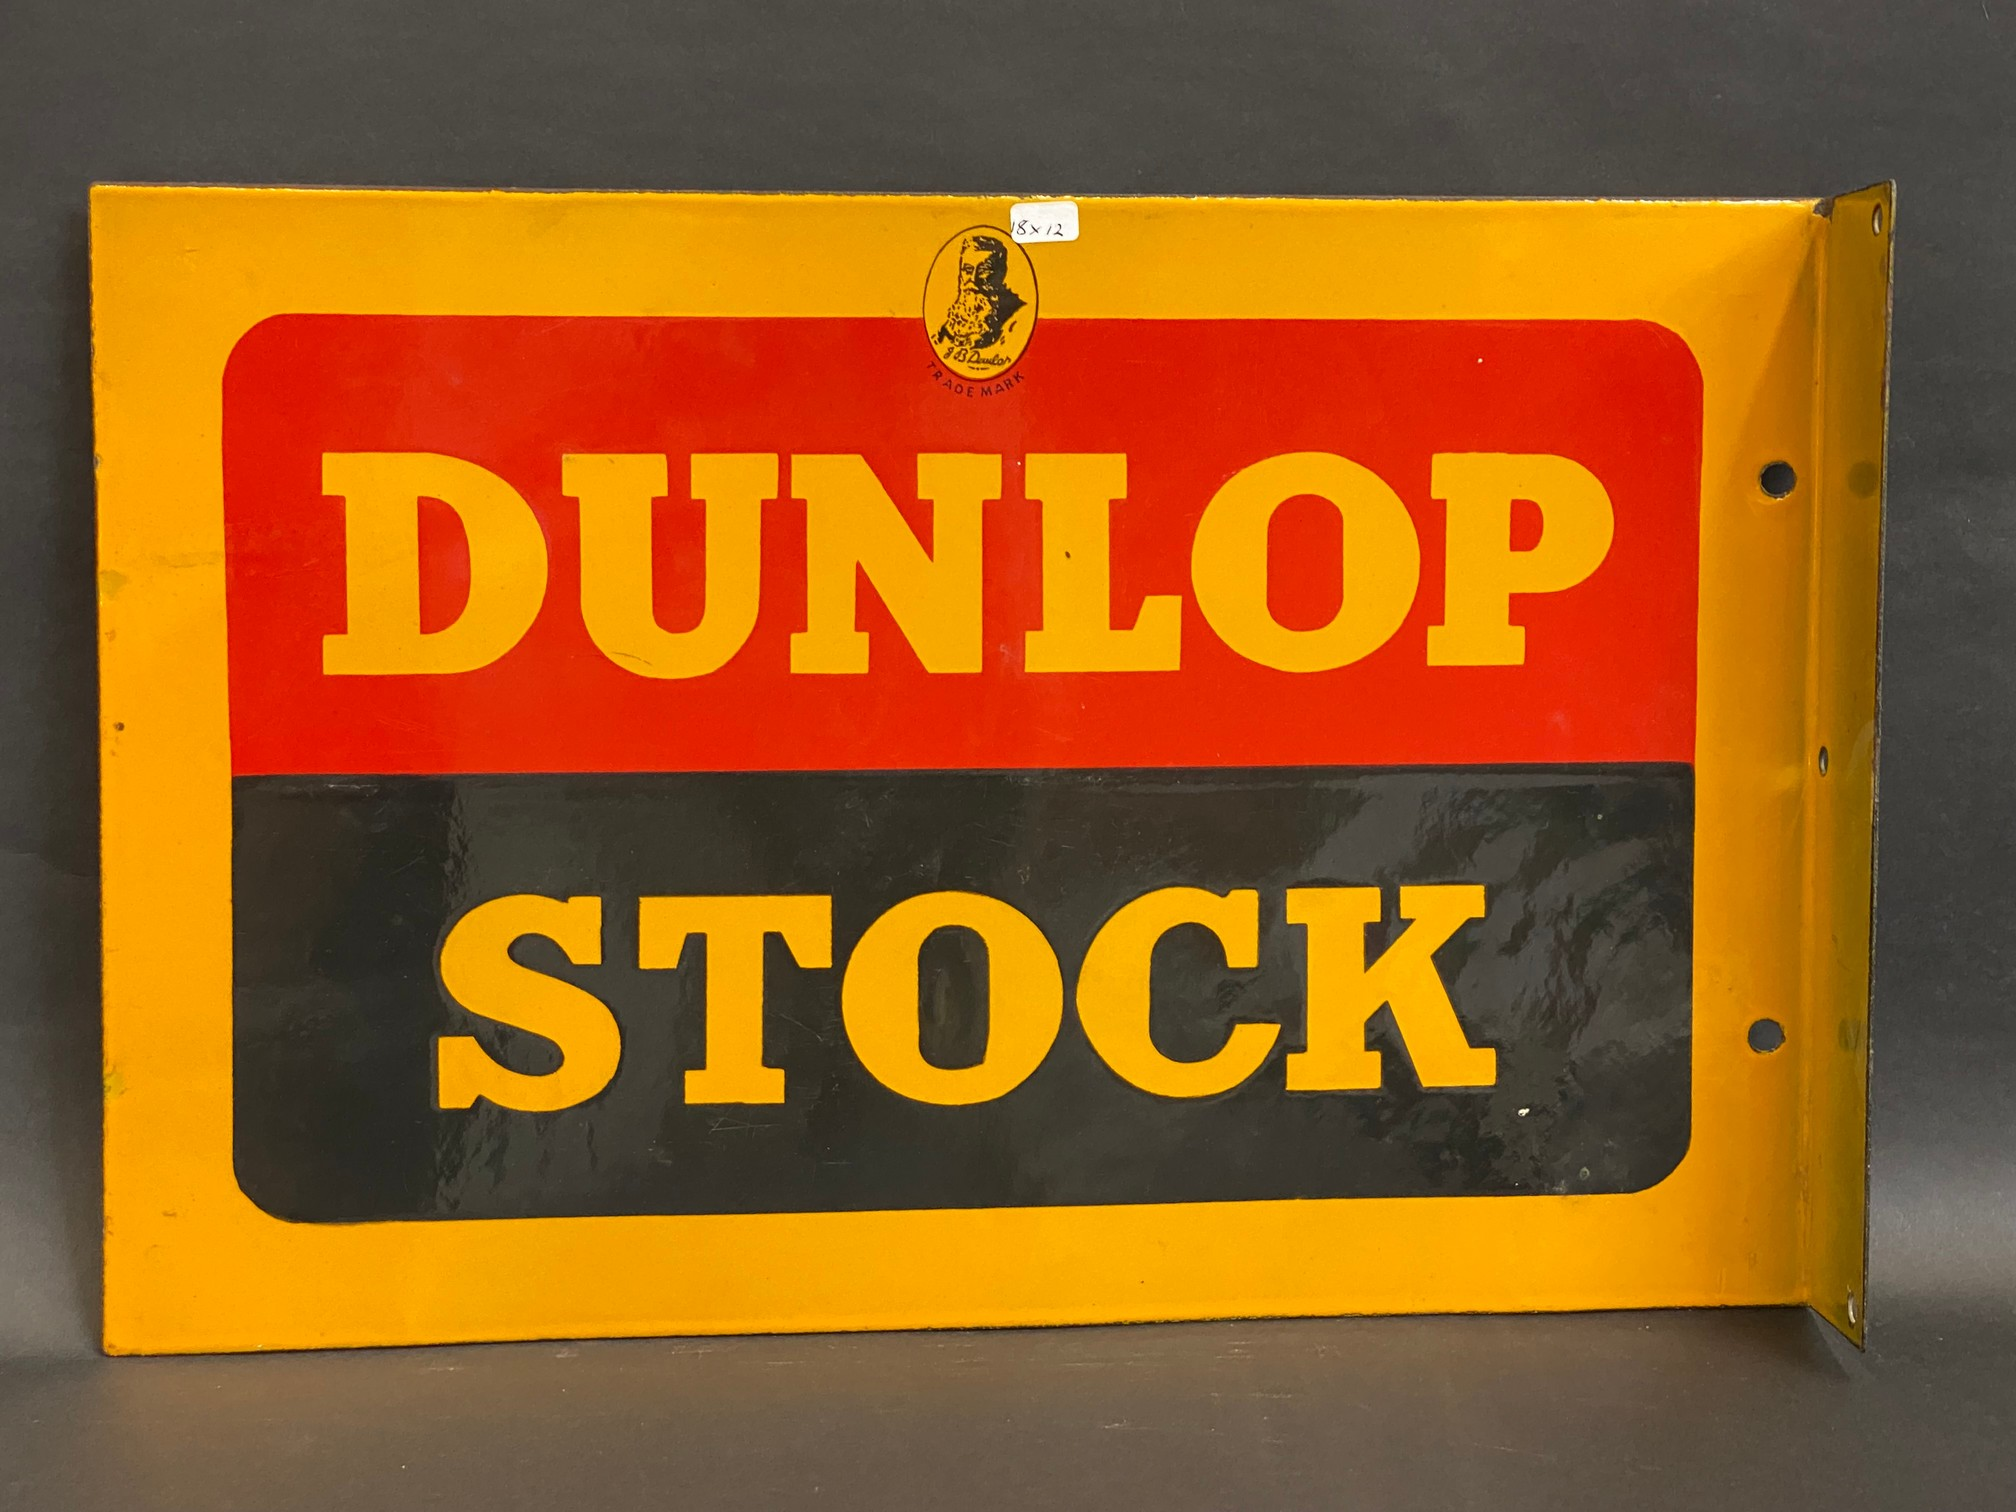 A Dunlop Stock double sided enamel sign with hanging flange, in near mint condition, made by Sur - Image 4 of 4